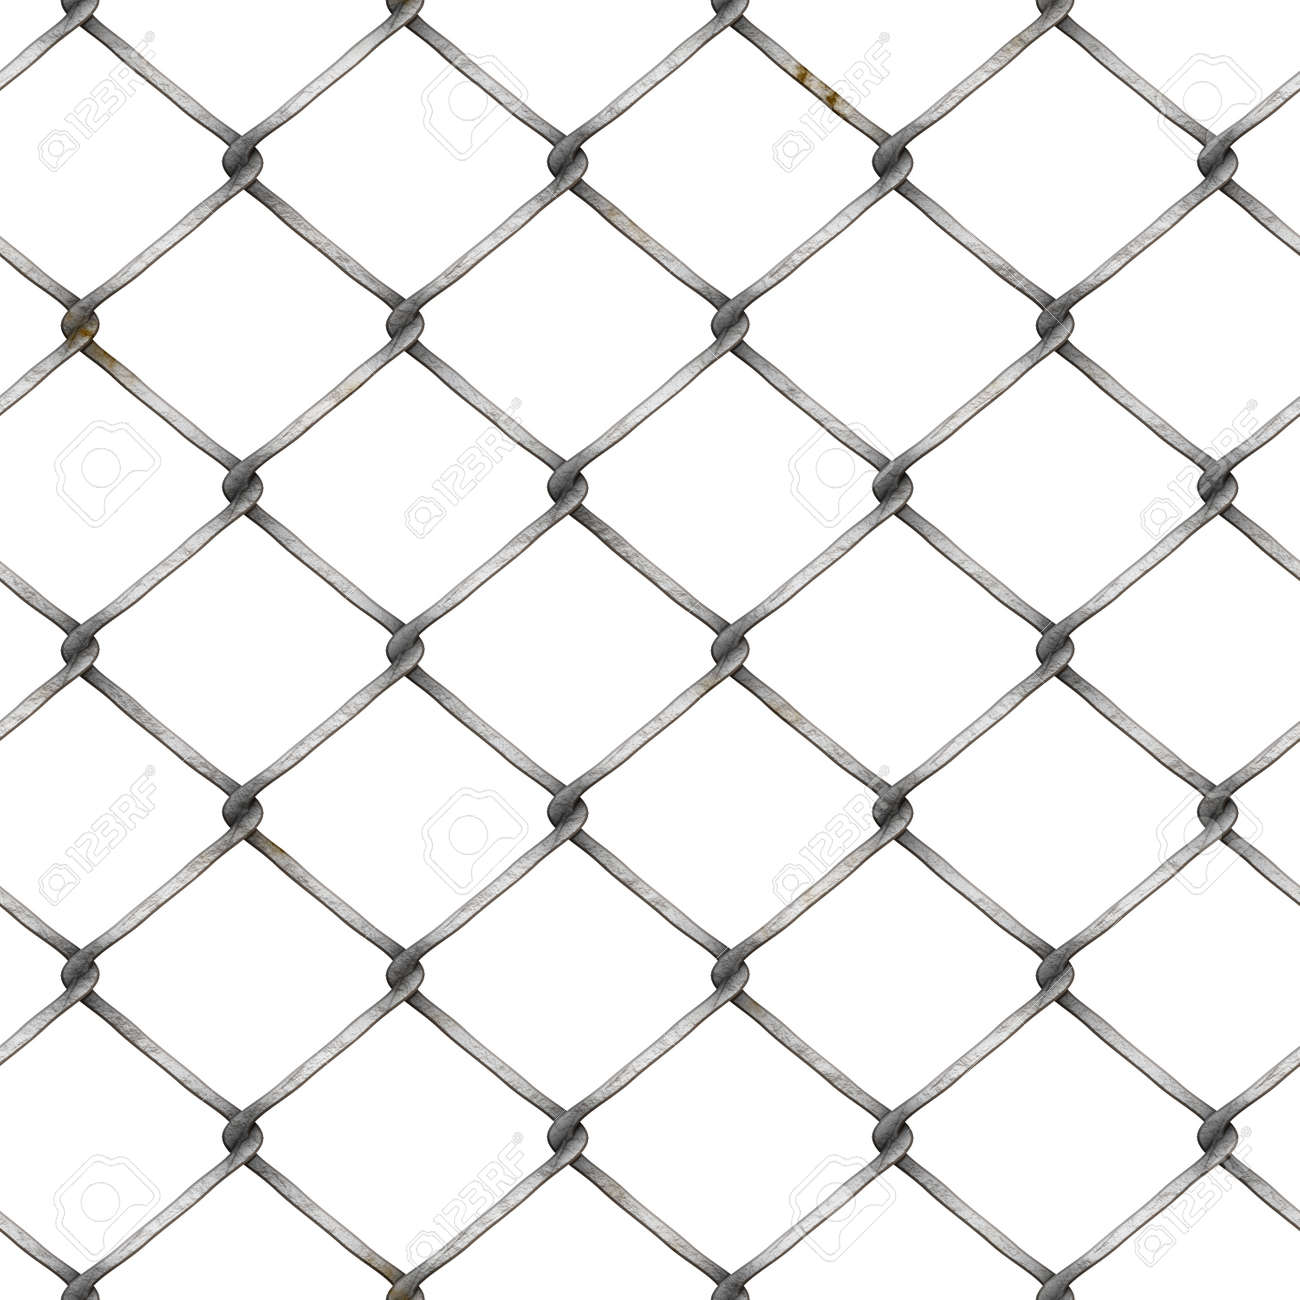 Wire Mesh Fence At White Background,wire Fence Stock Photo, Picture ...